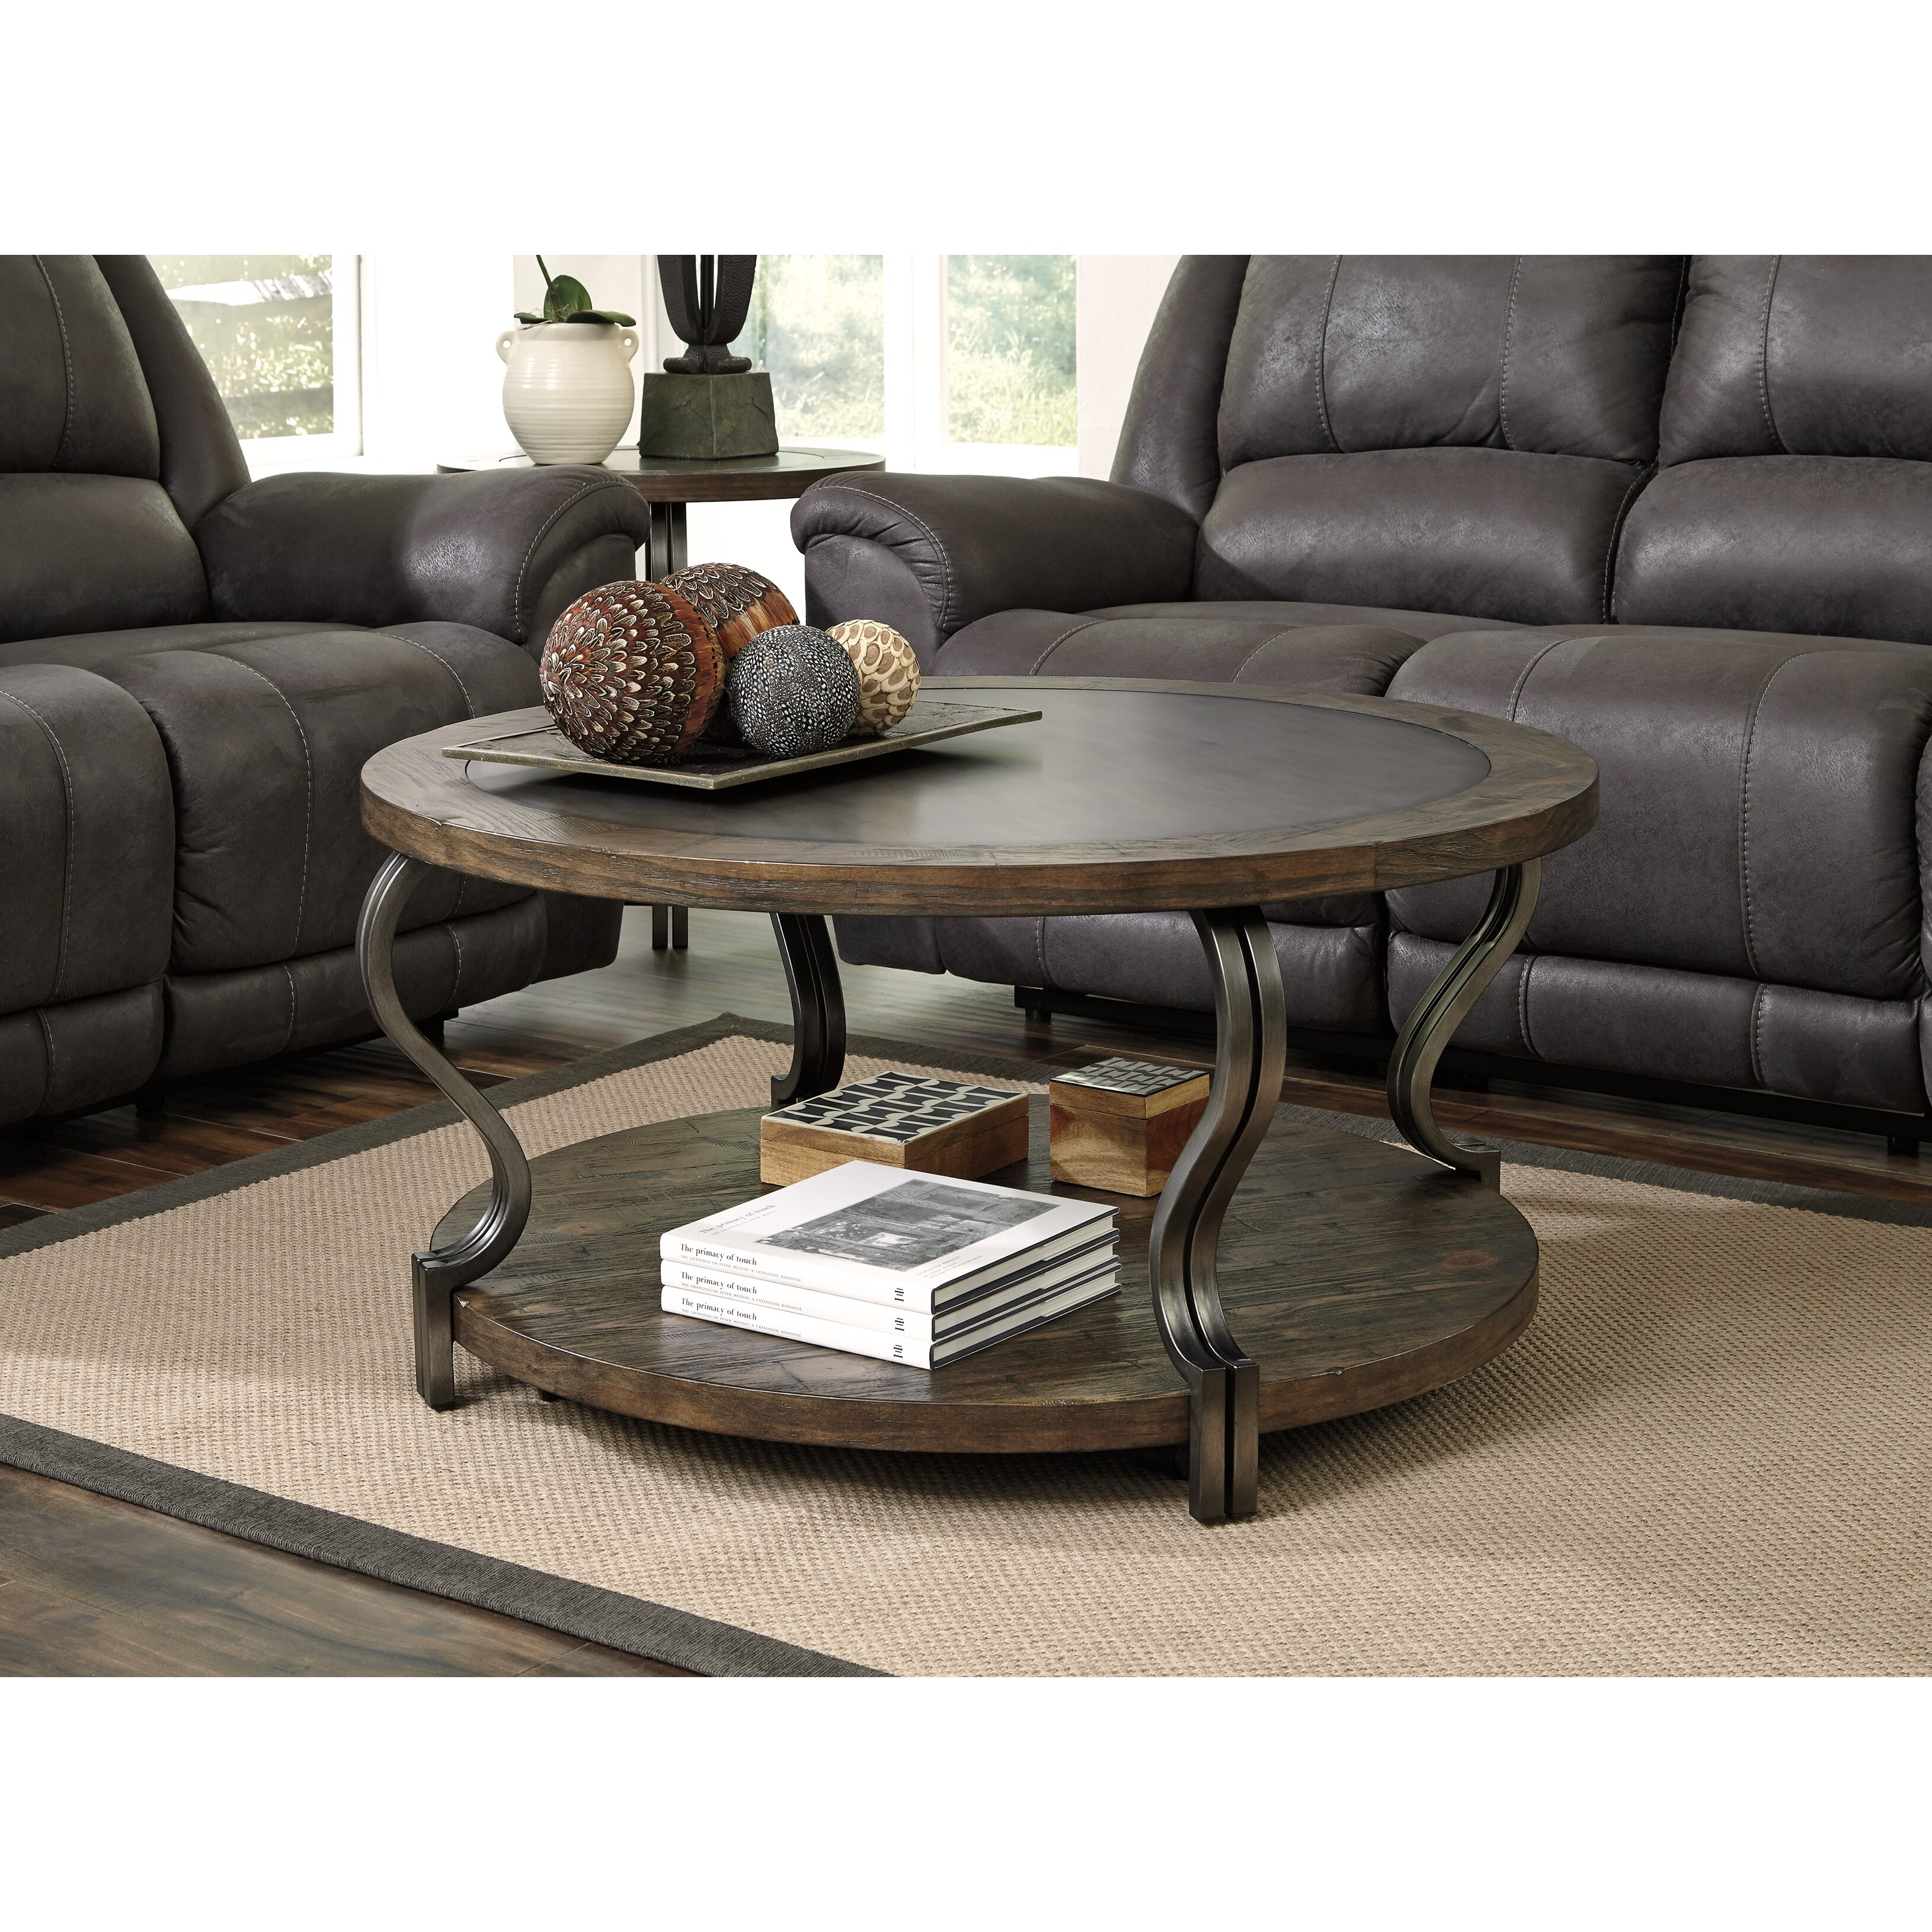 Ashley Furniture Distressed Coffee Table: Signature Design By Ashley Volanta Coffee Table & Reviews